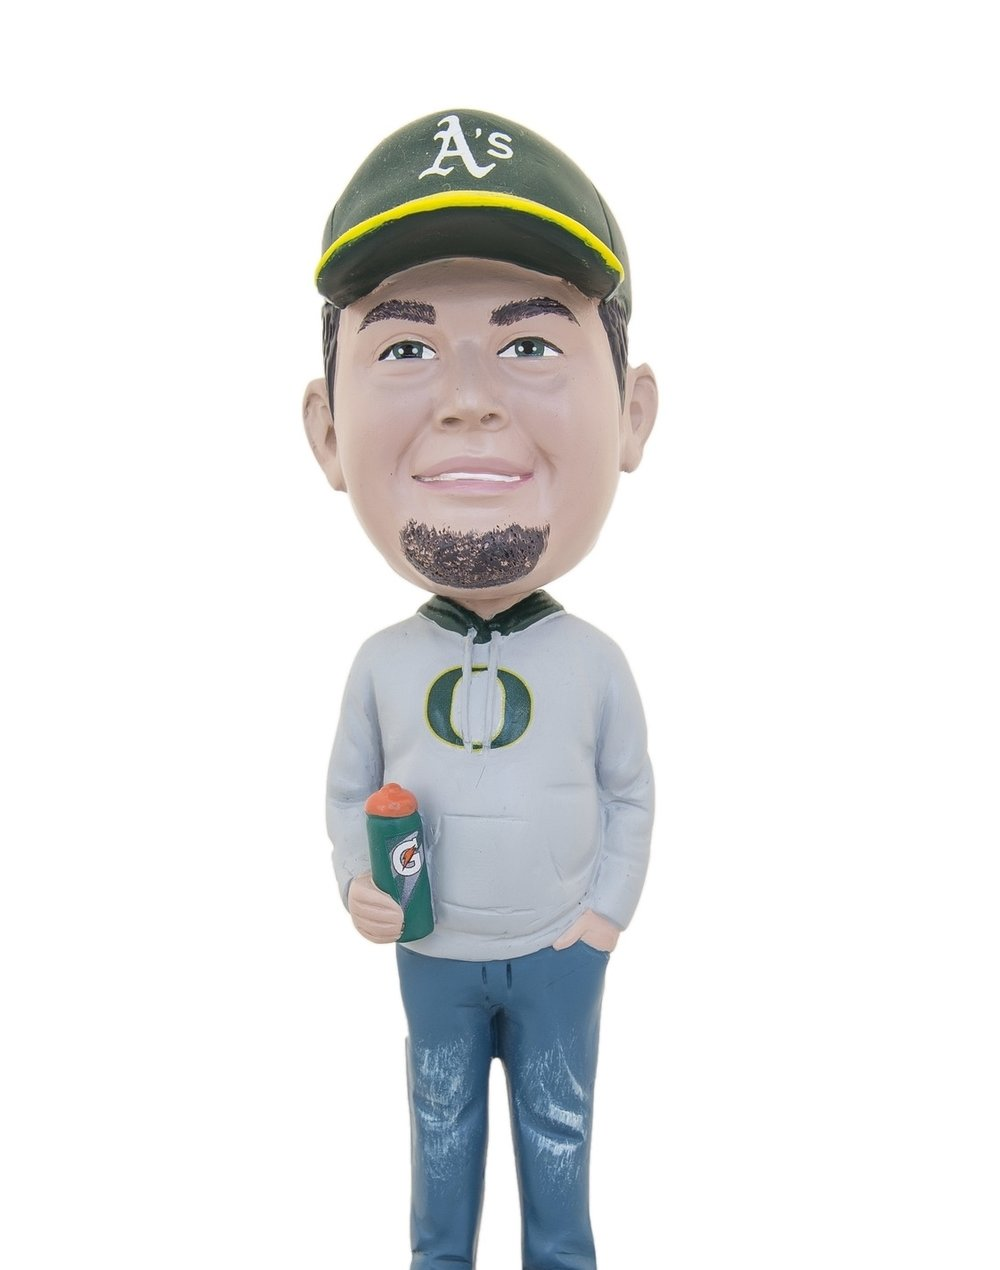 Yep. I have my own bobblehead.